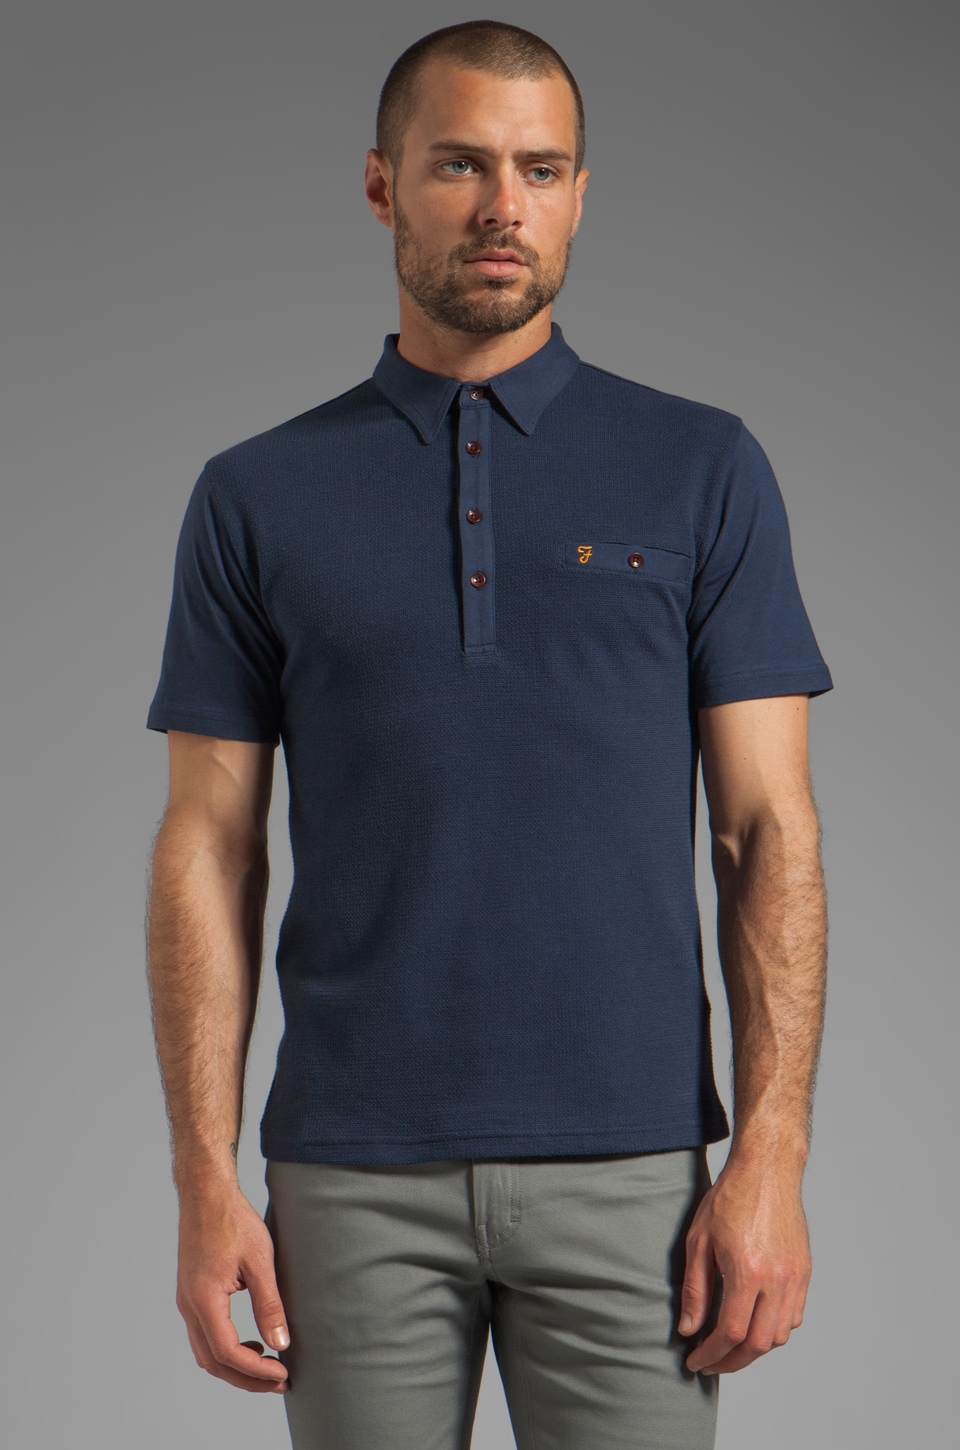 FARAH VINTAGE The Lester Textured Front Welt Pocket Polo in Midnight